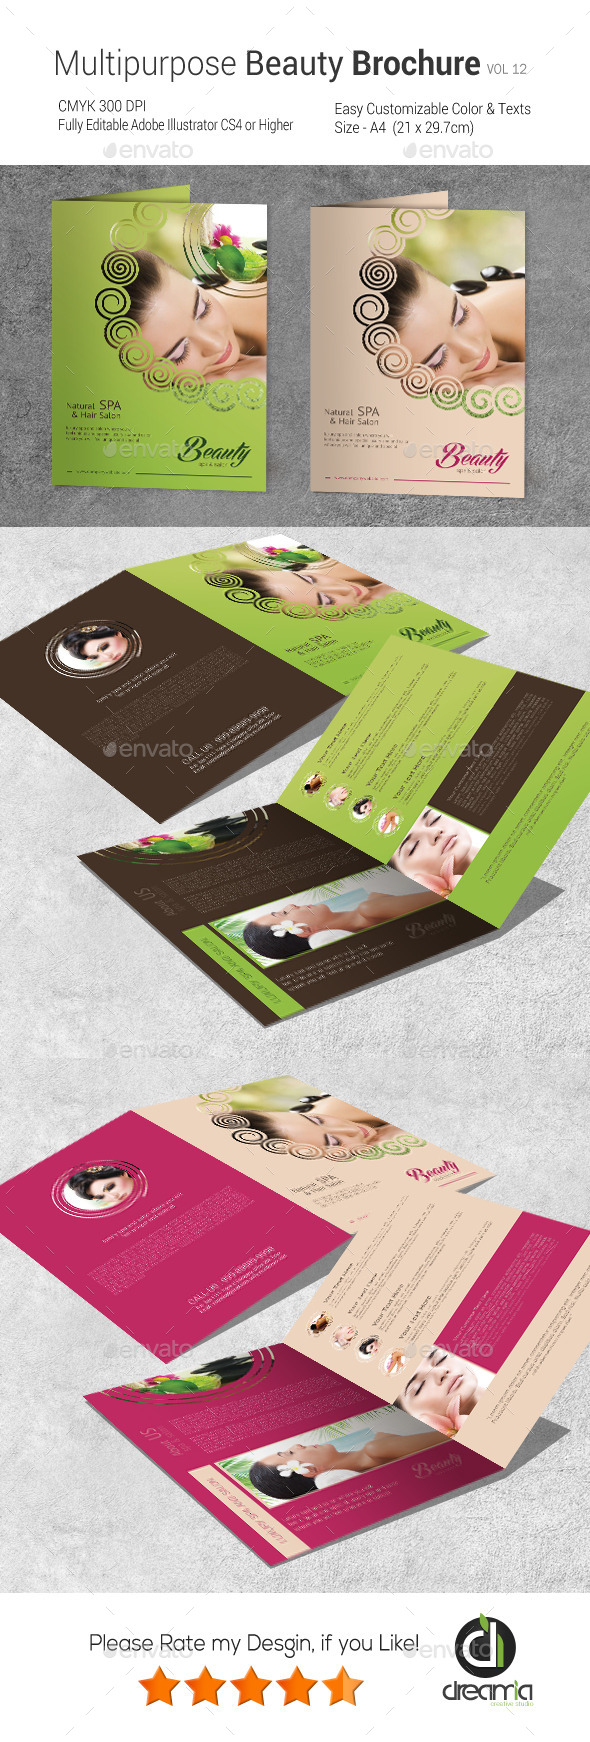 Bifold Beauty Brochure Template- VOL-12  - Corporate Business Cards